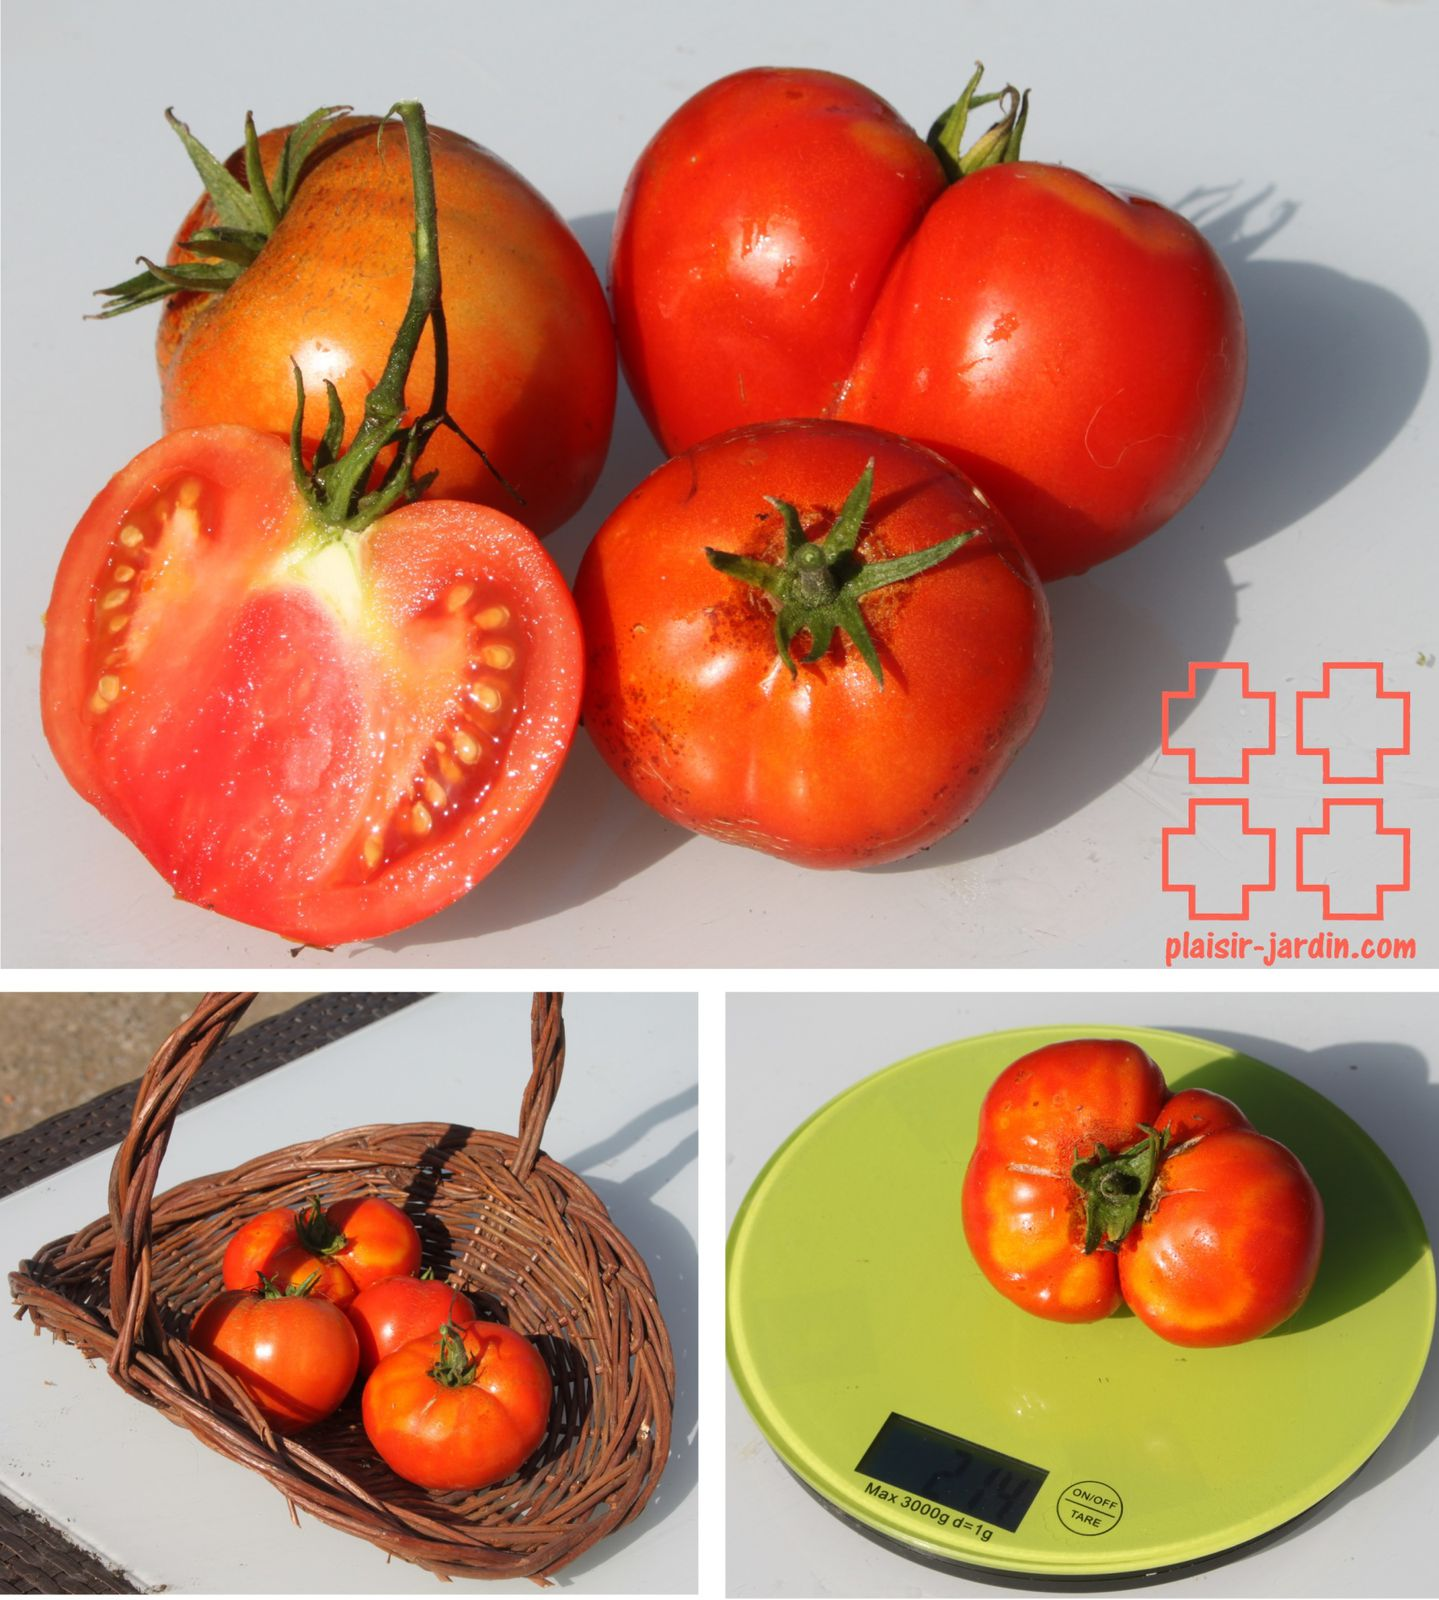 les tomates gros fruits test es en 2013 plaisir. Black Bedroom Furniture Sets. Home Design Ideas